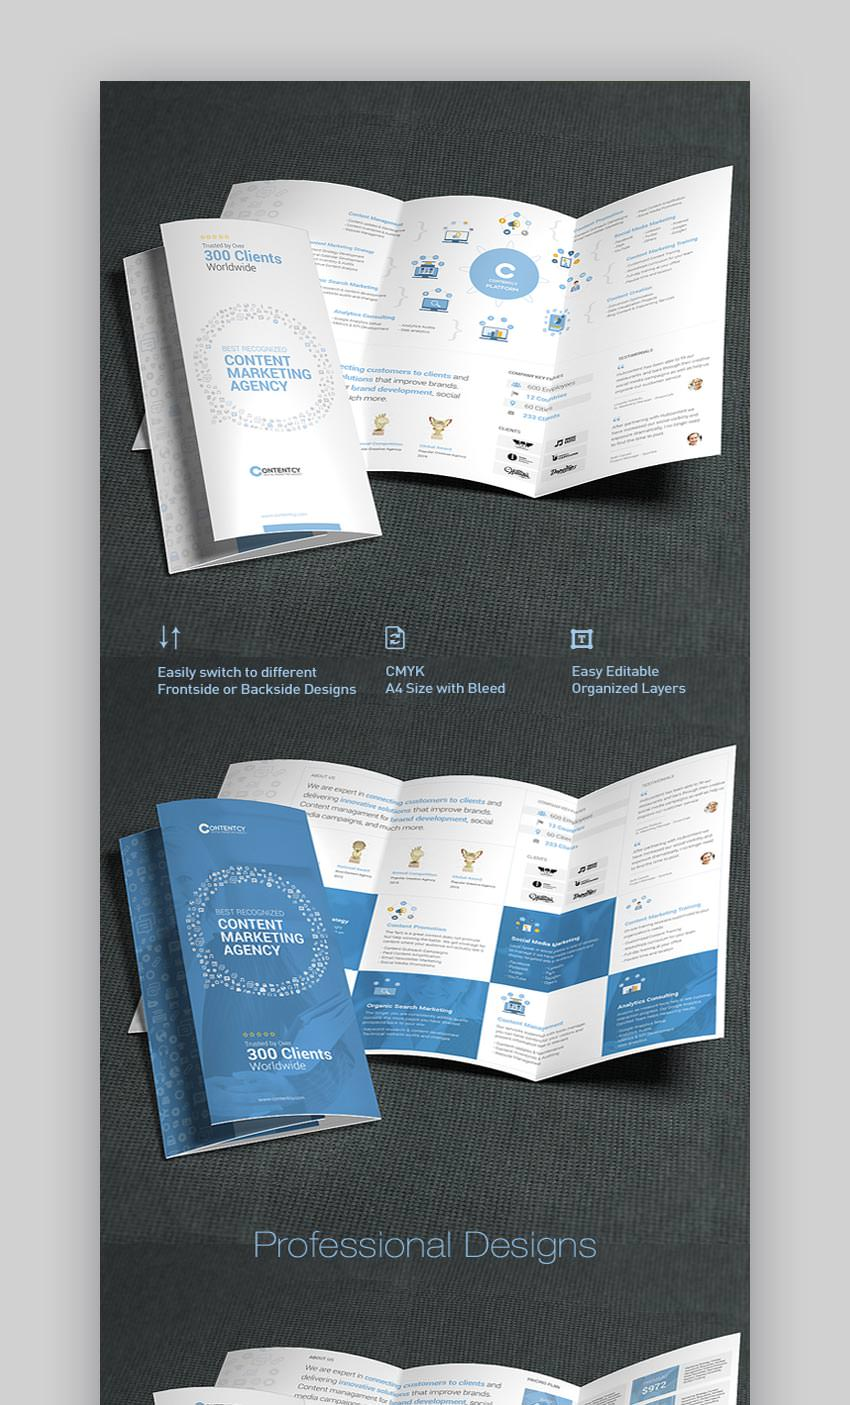 Content Marketing Trifold Brochure